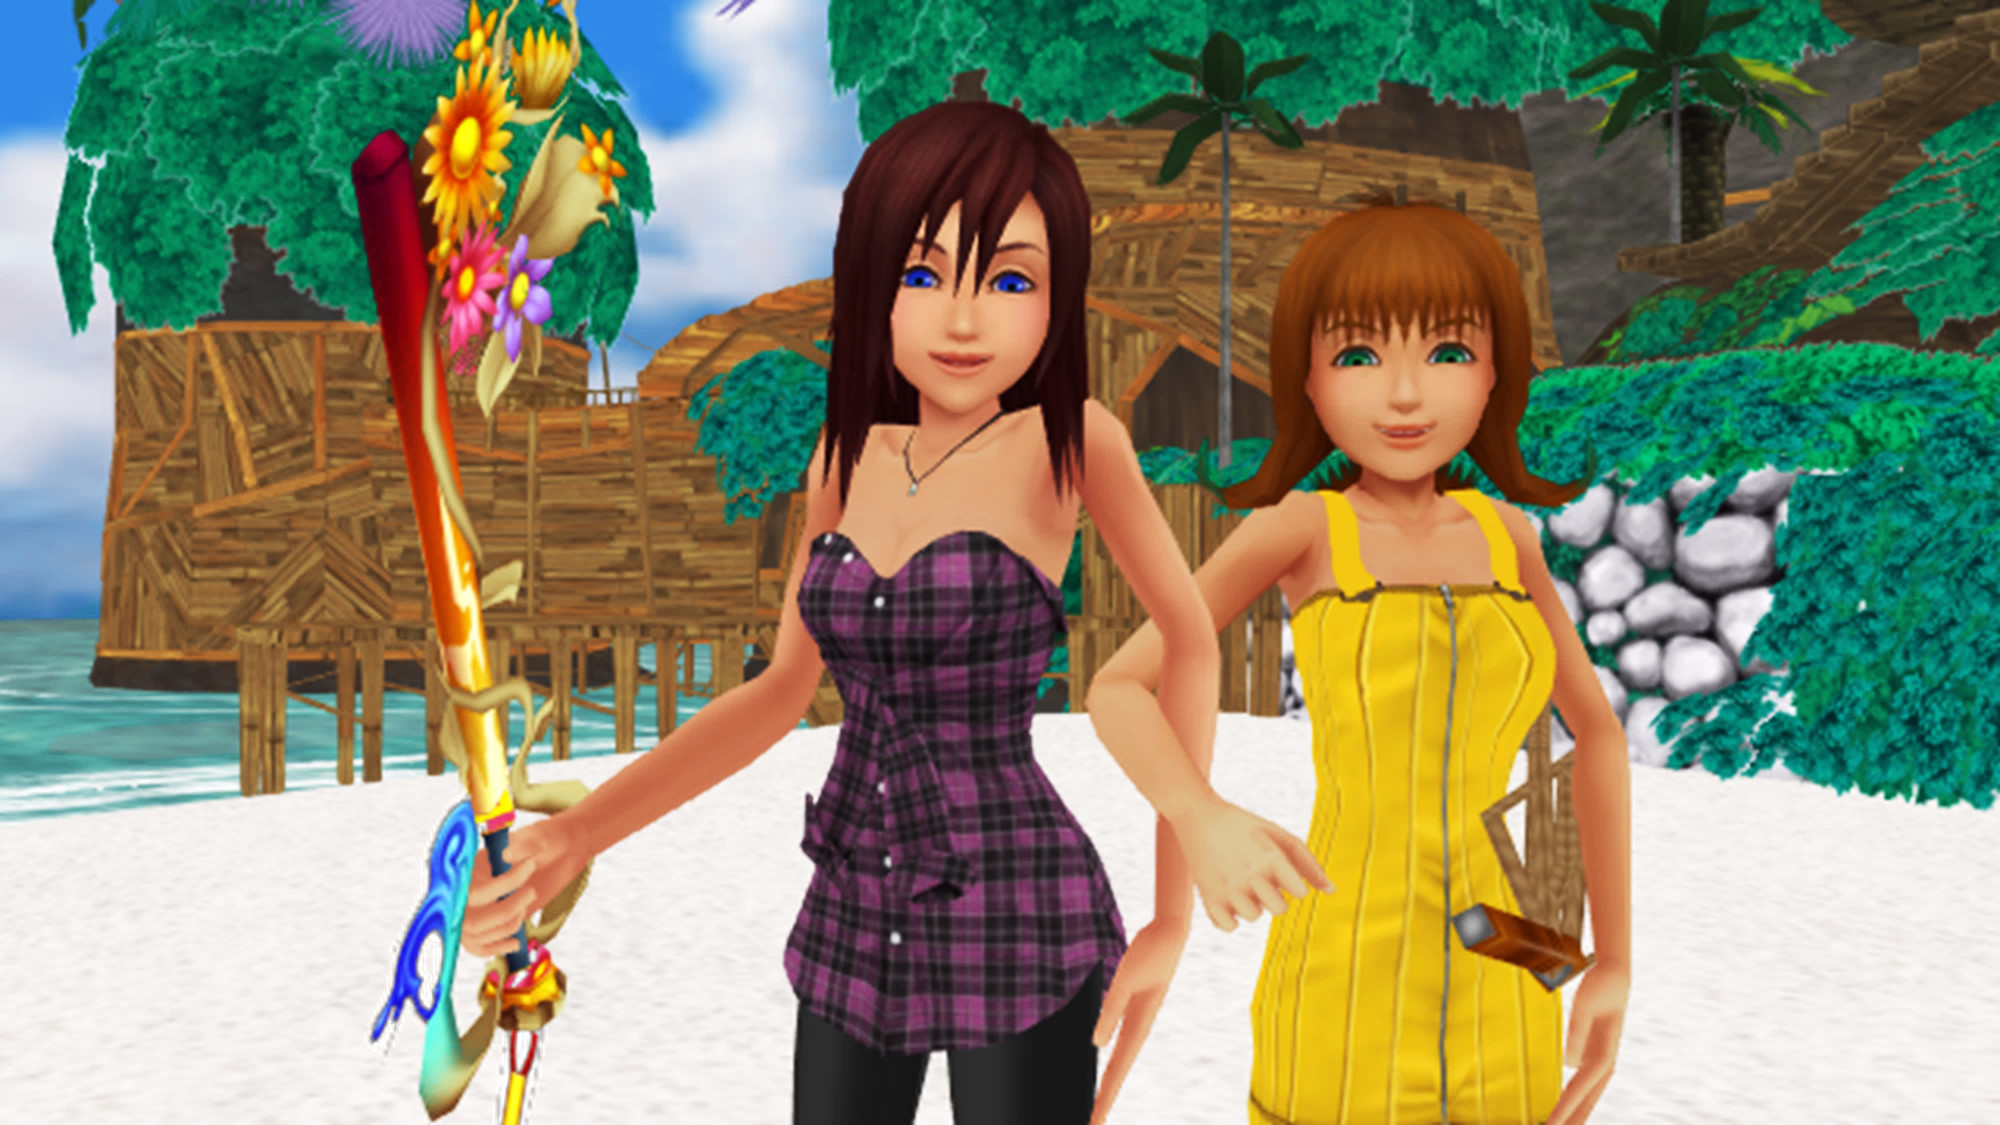 Res: 2000x1125, The Girls of Kingdom Hearts images Kairi and Selphie are Team Friends Girl  Power. HD wallpaper and background photos